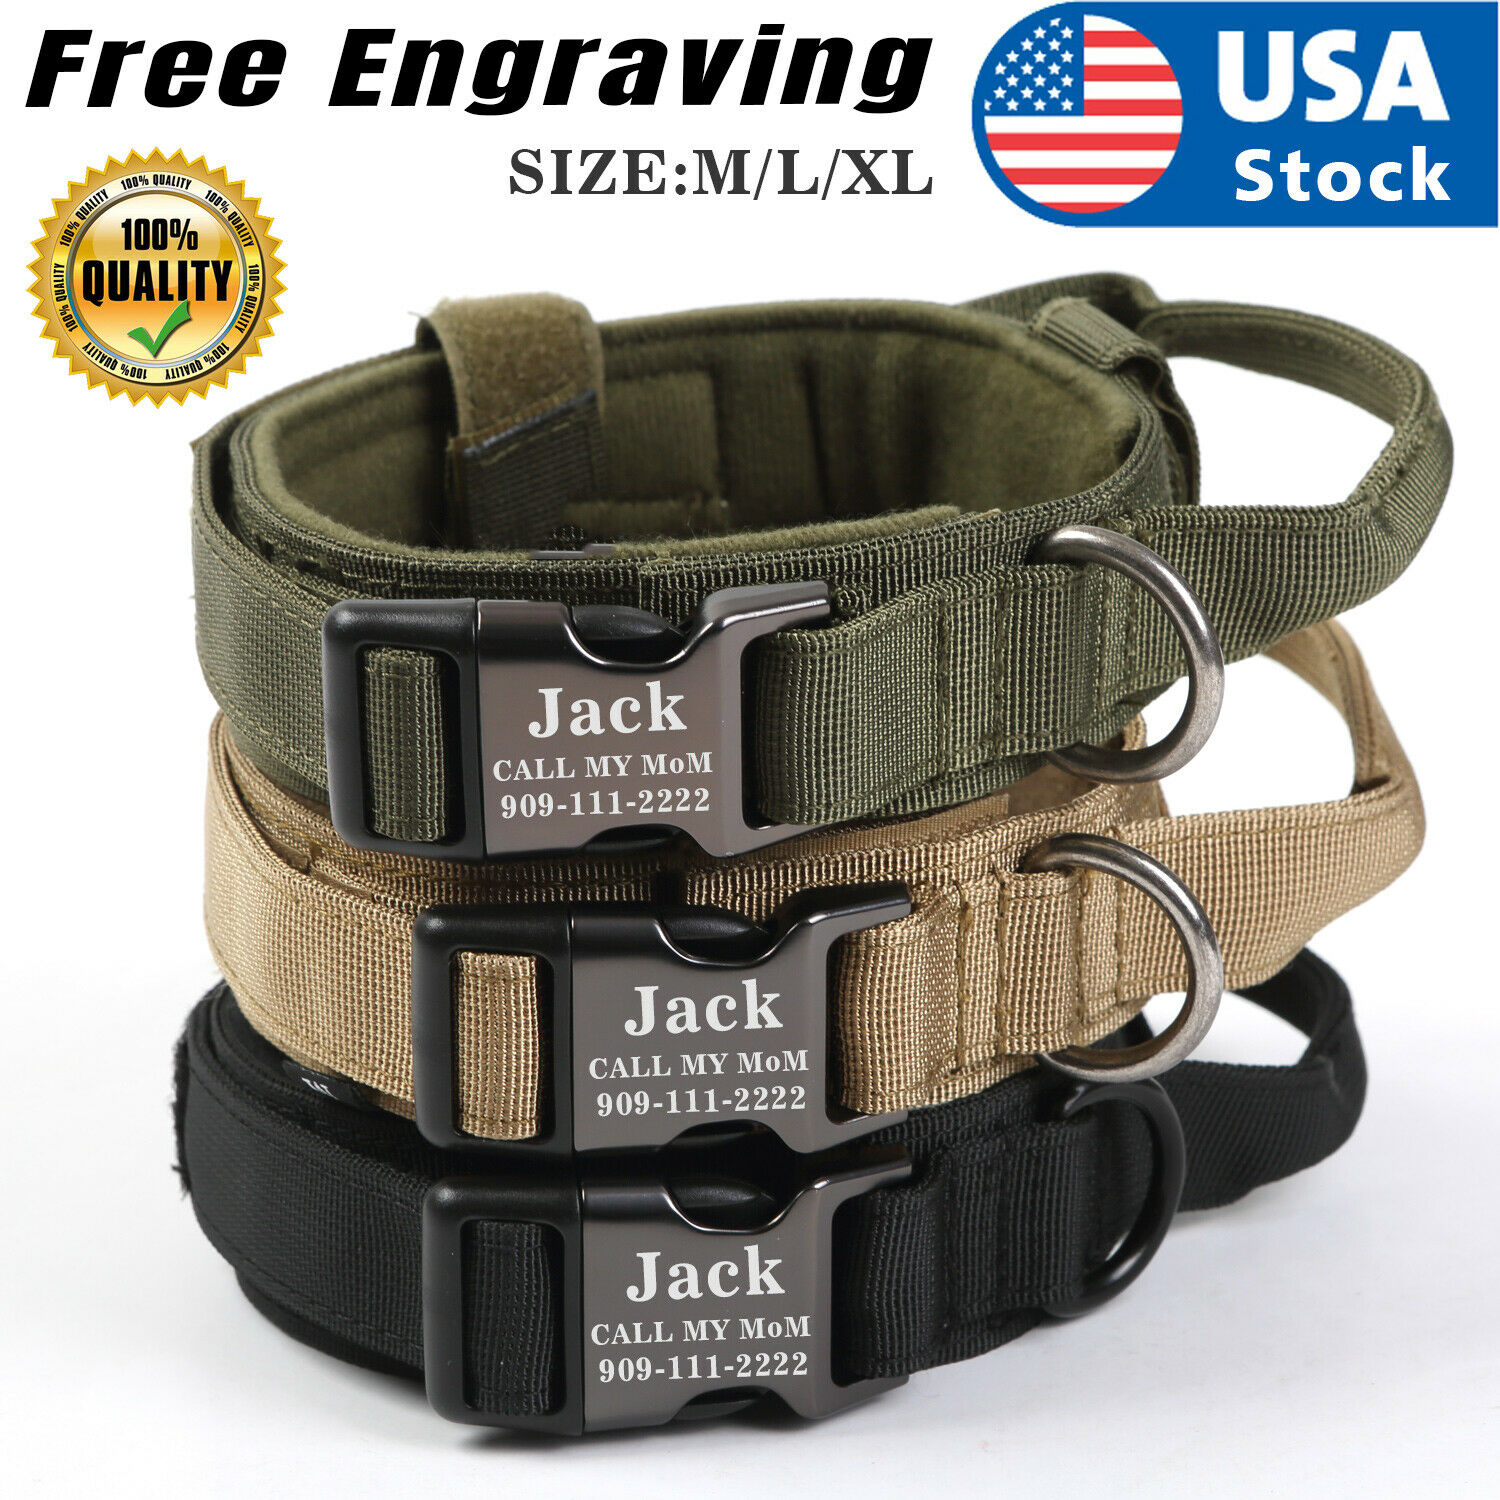 US Heavy DutyTactical Military K9 Dog Training Collar with Metal Buckle Tag Name Collars